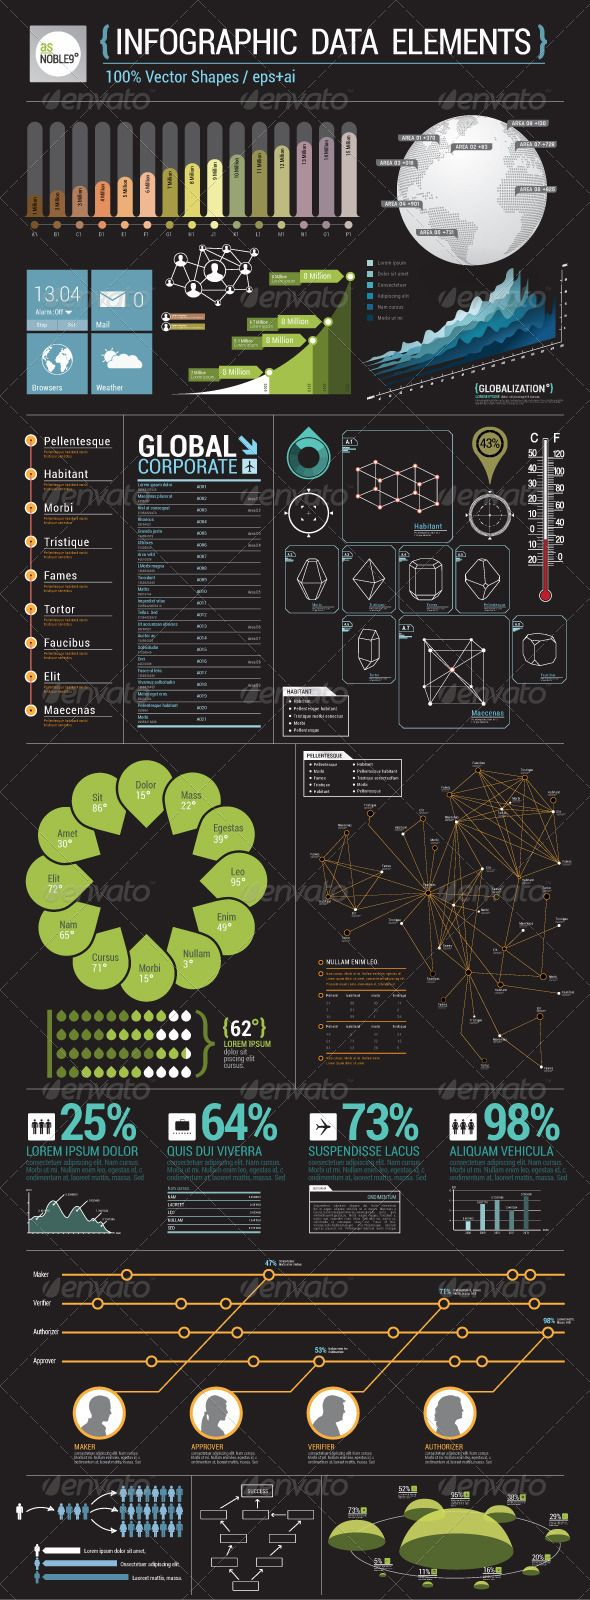 Infographic Data Elements